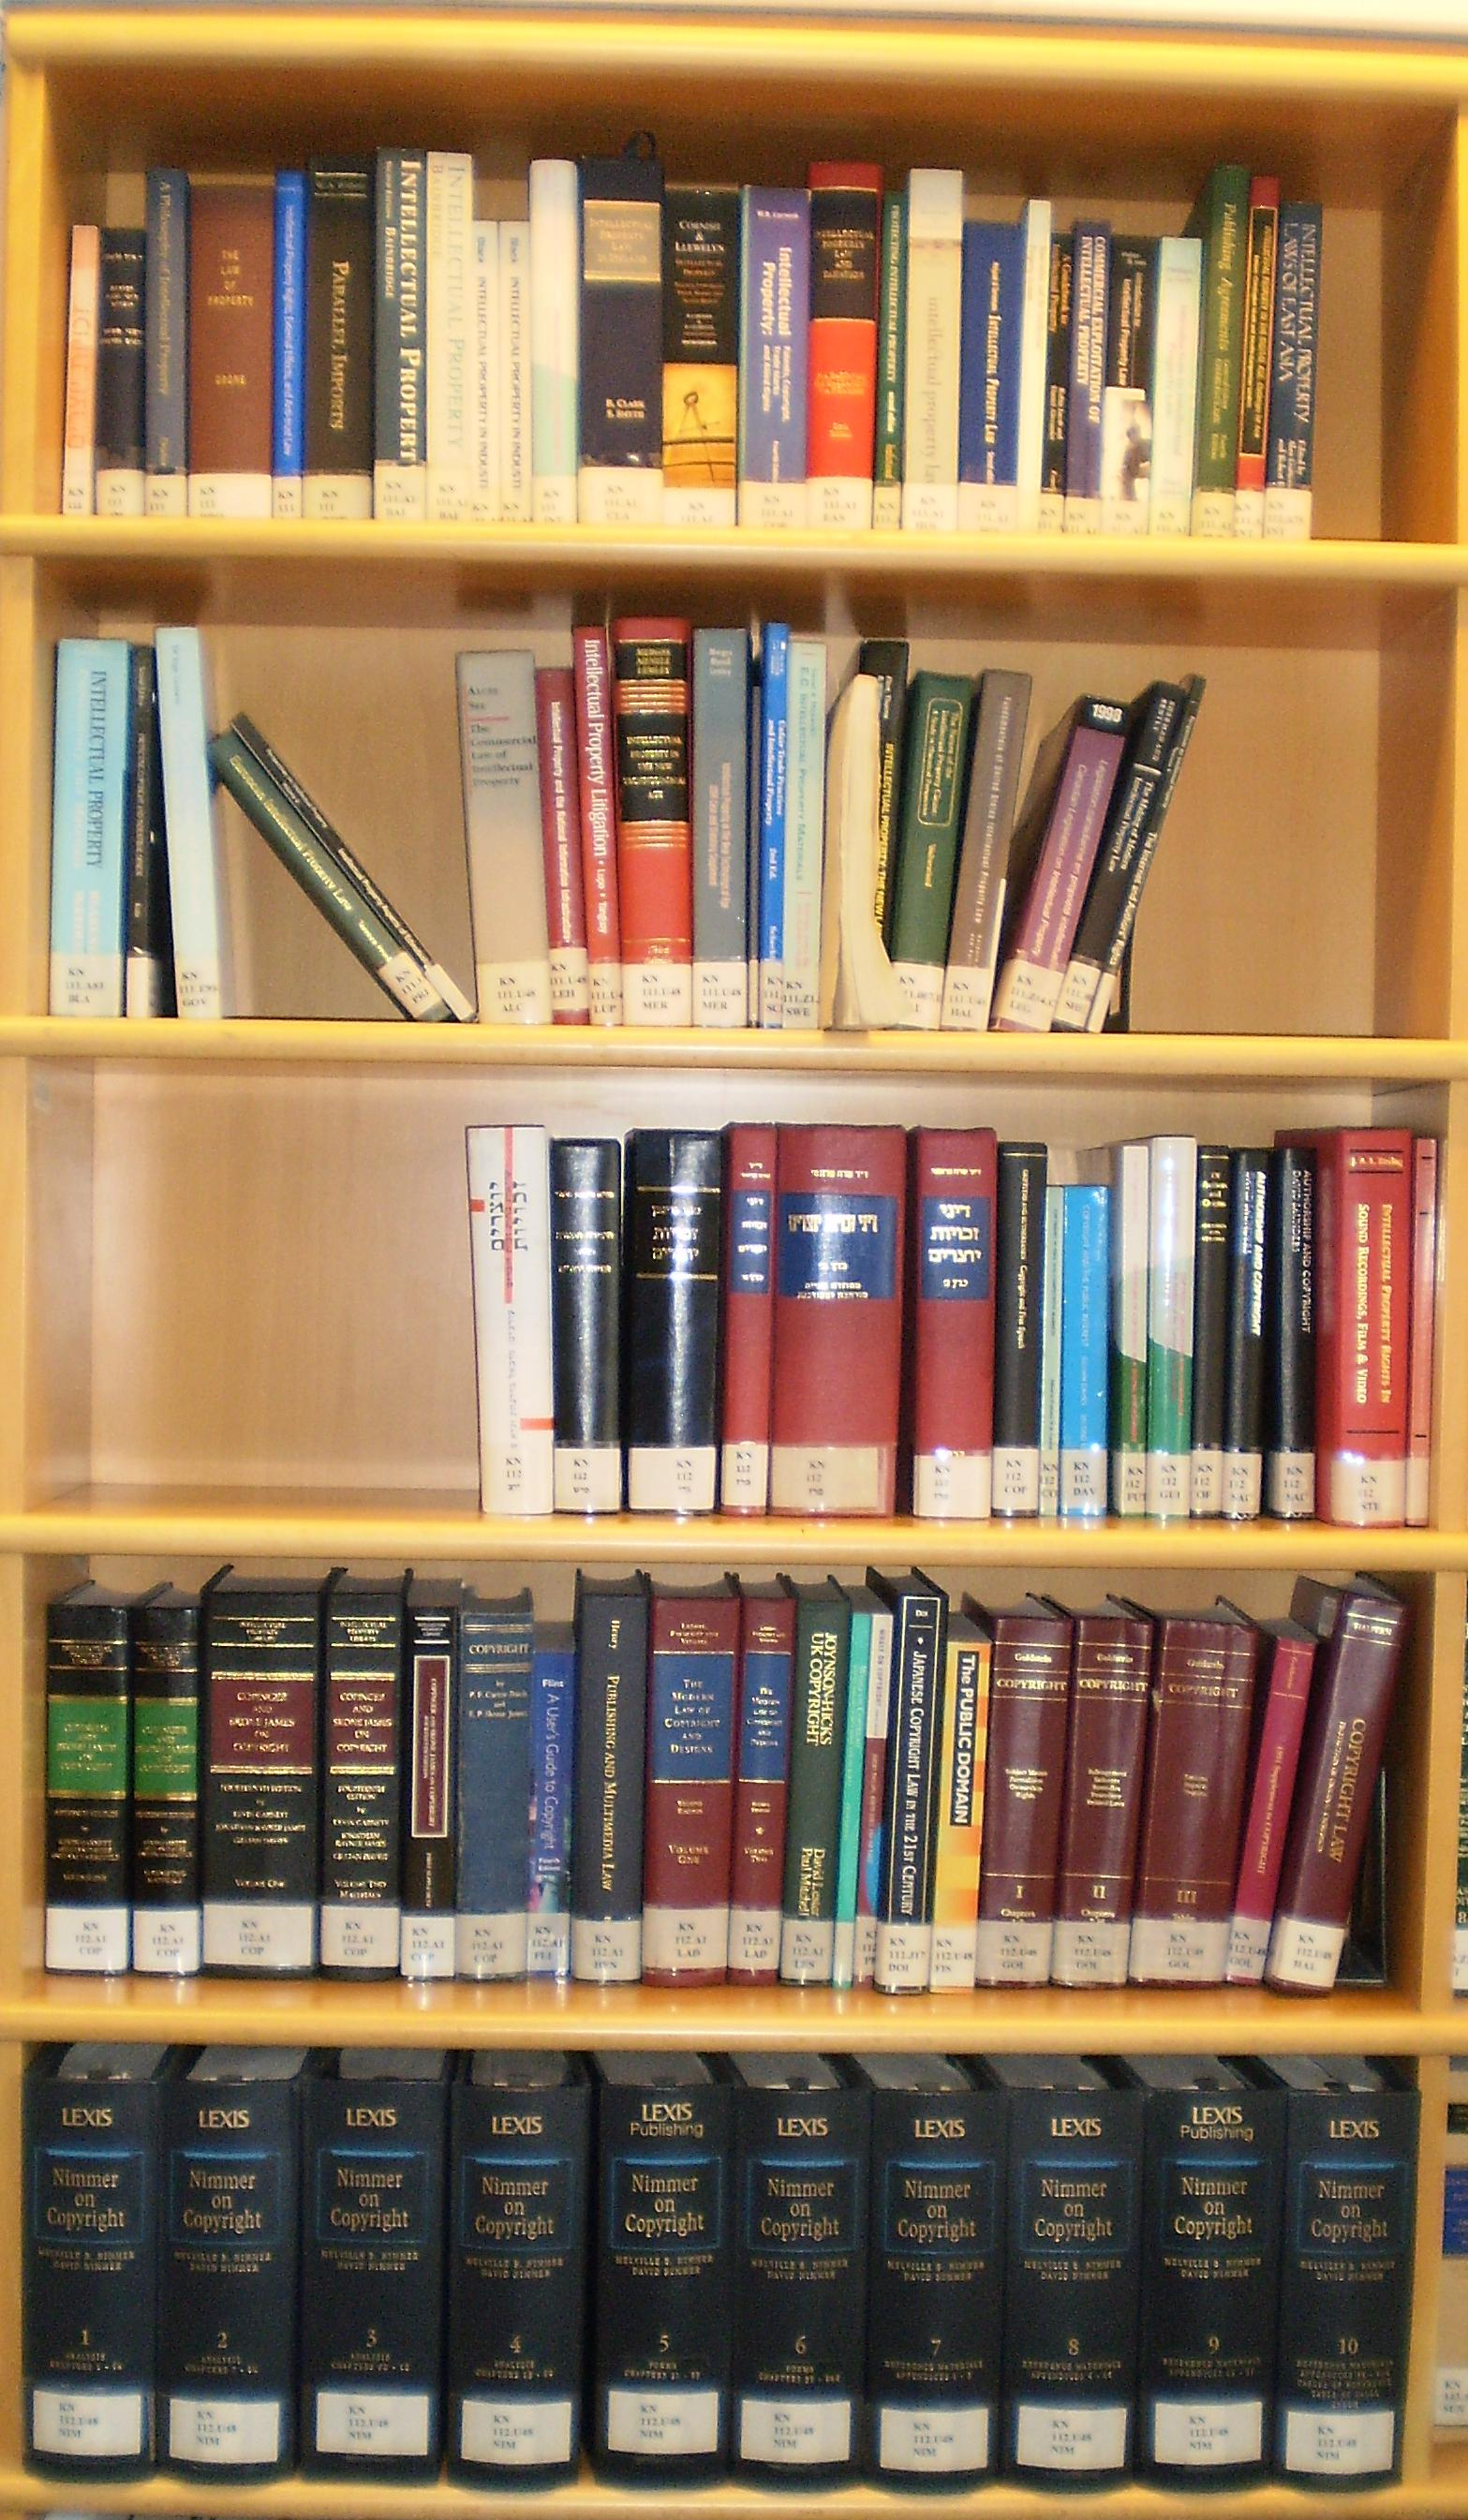 israel supreme court copyright law bookshelf jpg wikimedia commons